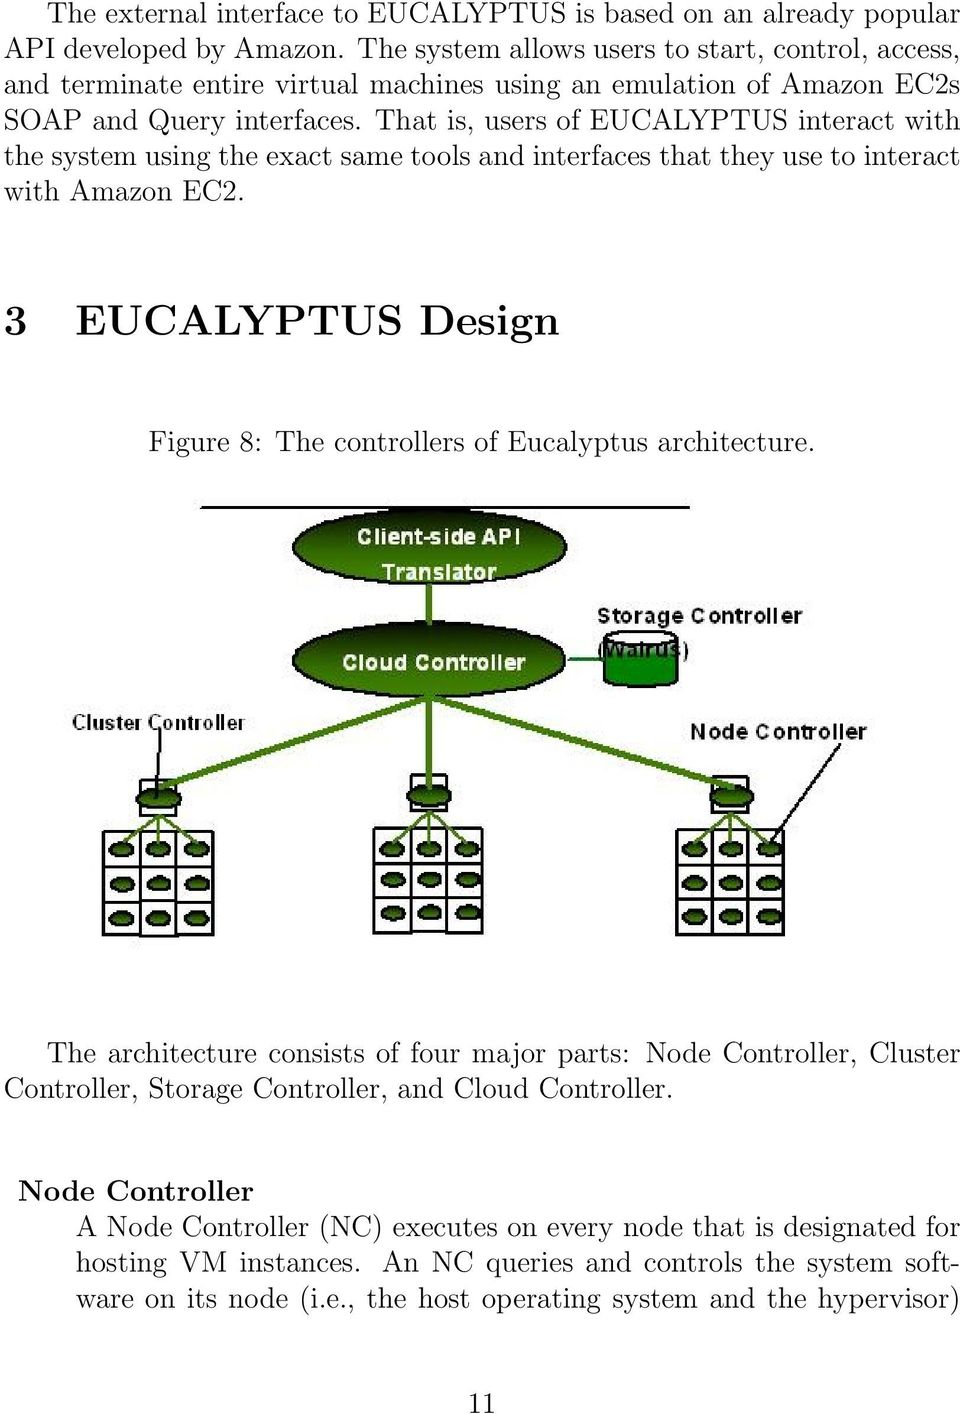 That is, users of EUCALYPTUS interact with the system using the exact same tools and interfaces that they use to interact with Amazon EC2.